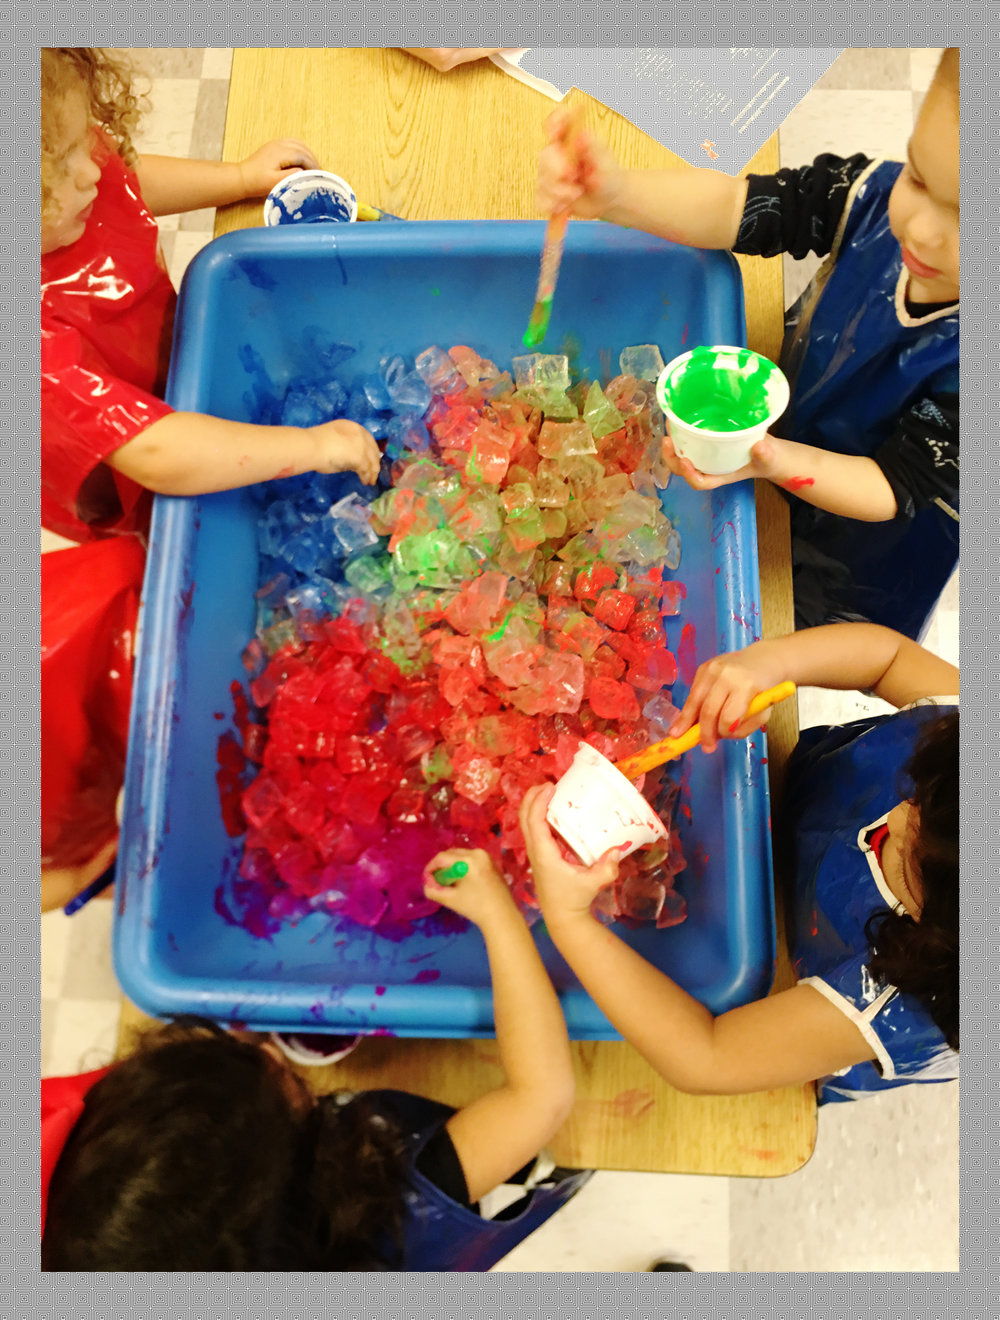 "three-year-olds learn about mixing primary colors While painting ice - ""When I paint, I am learning about shape, line, and color. I am learning fine motor control from holding a paintbrush and applying the right amount of pressure onto the ice cubes. I am learning to be calm and focused while others play around me."""